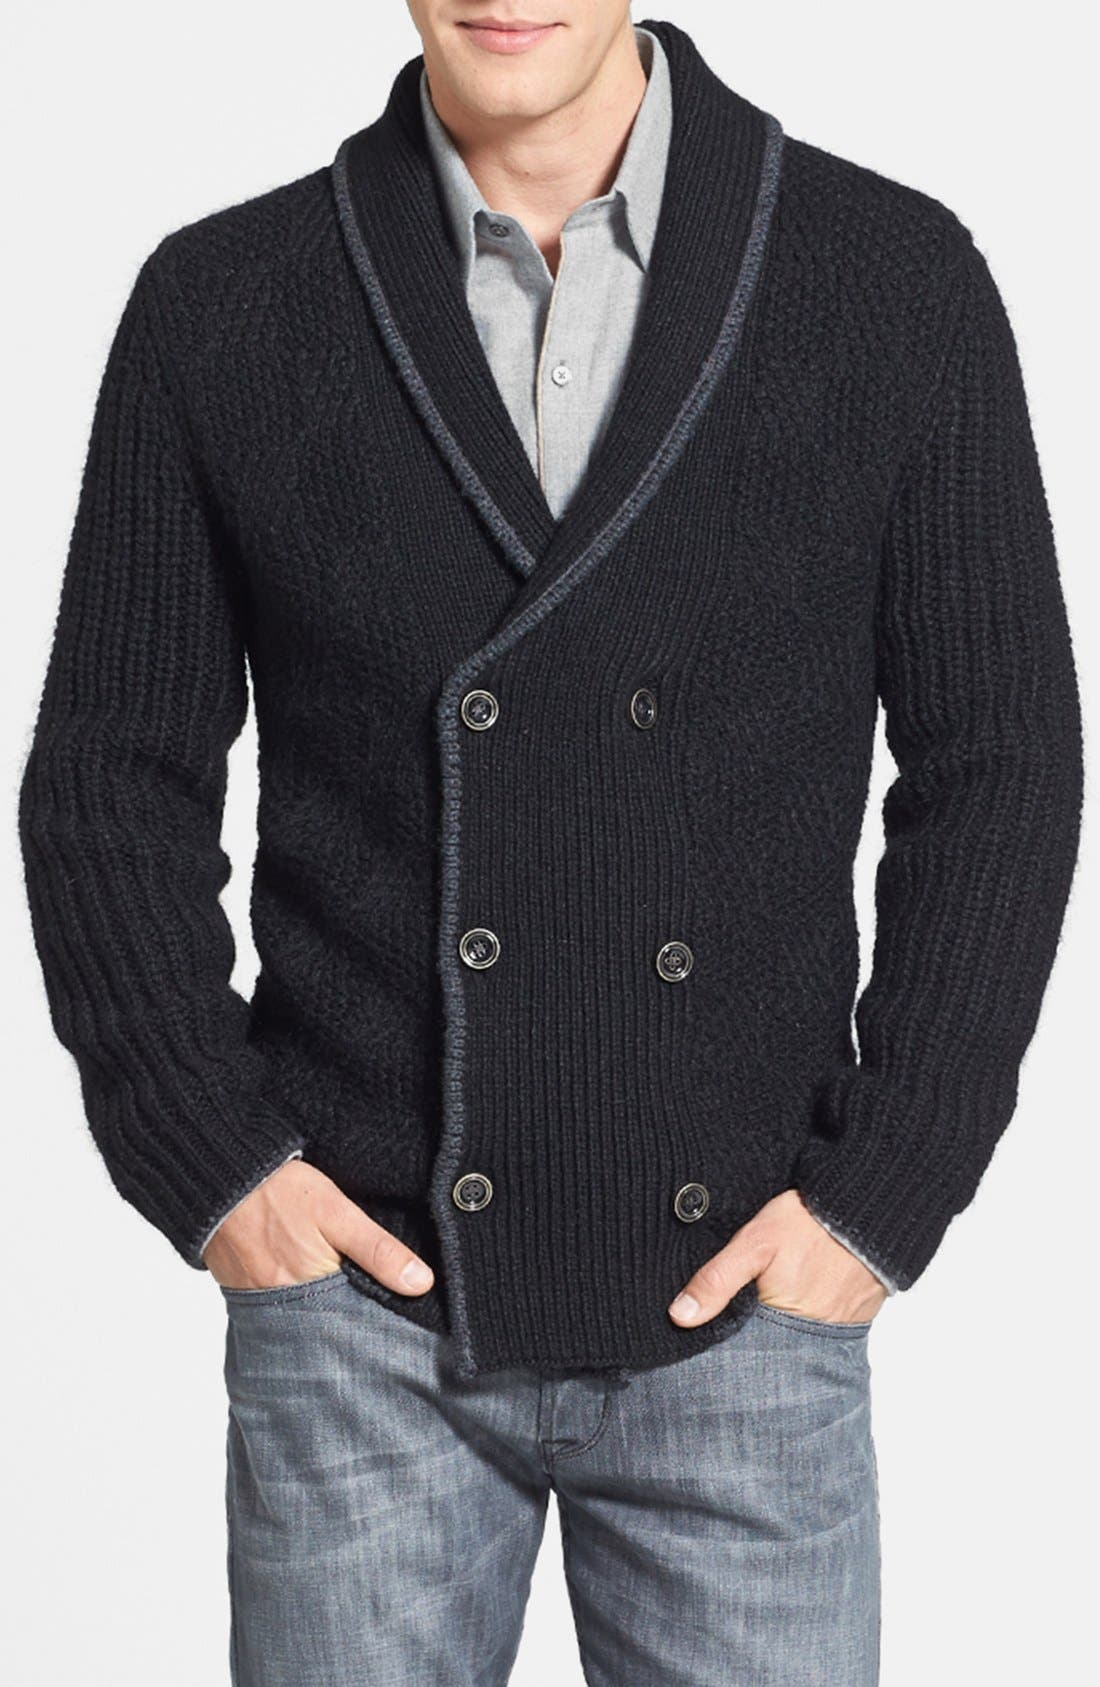 Alternate Image 1 Selected - Tommy Bahama 'Hudson Square' Regular Fit Cardigan